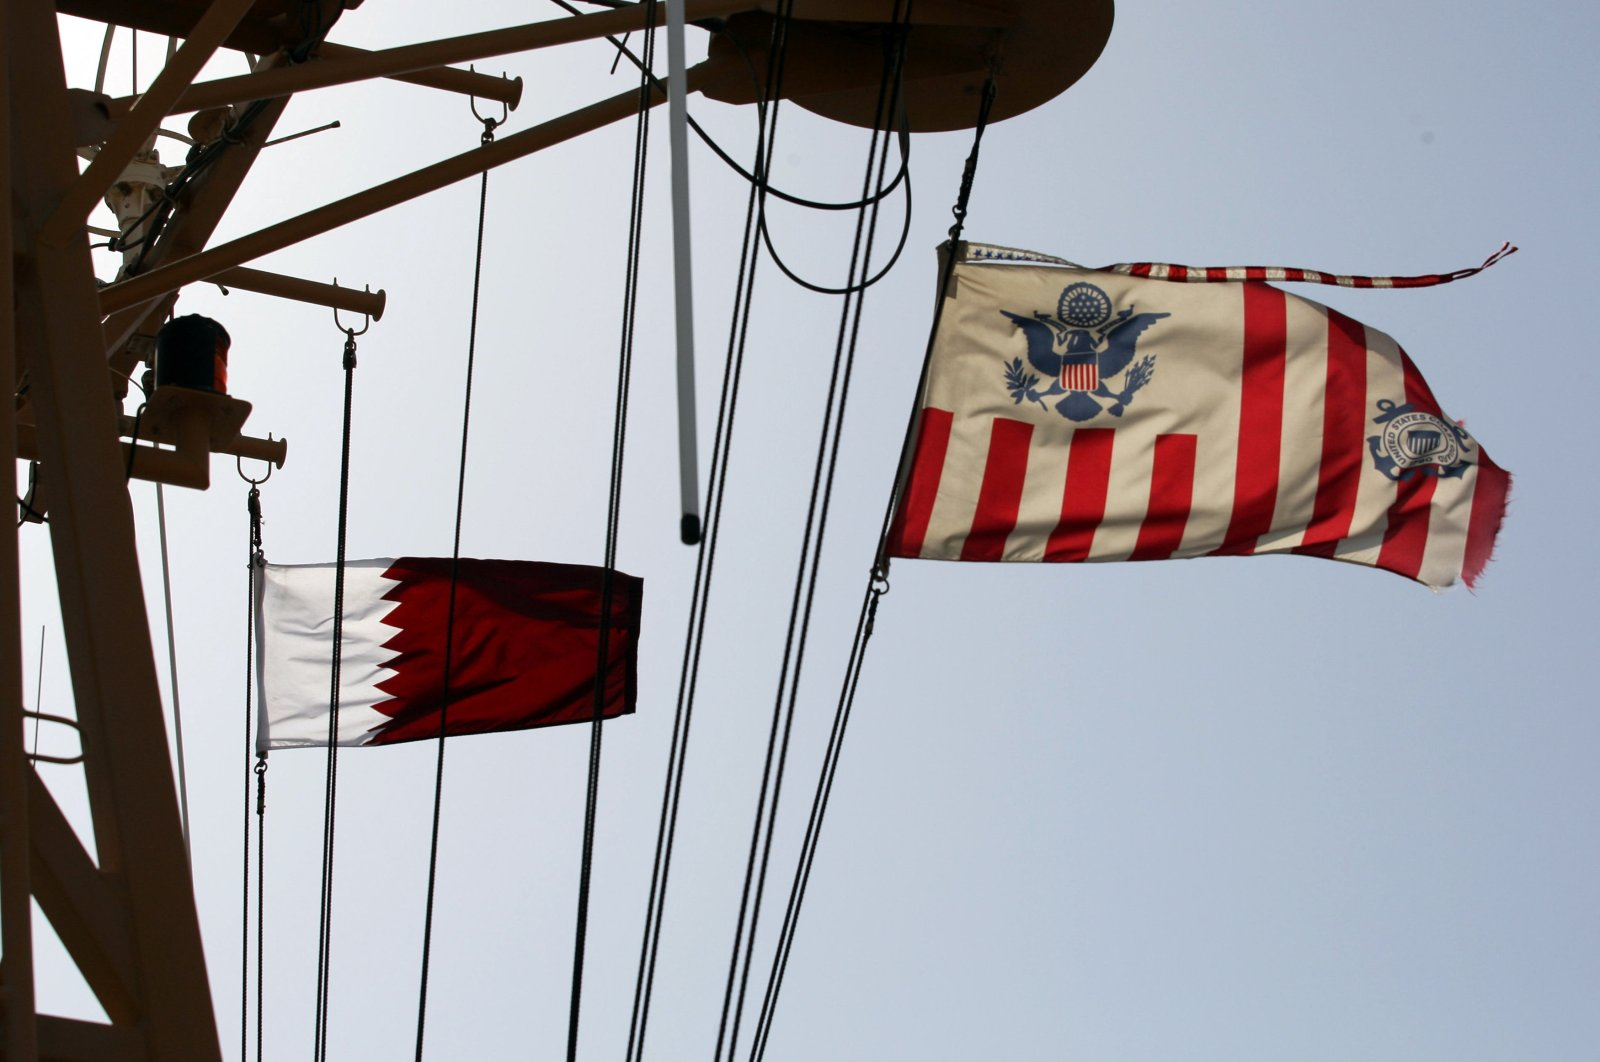 Qatari and U.S. Coast Guard flags flutter during a joint naval exercise by American and Qatari troops in the Arabian Gulf, Qatar, June 16, 2017. (Reuters Photo)